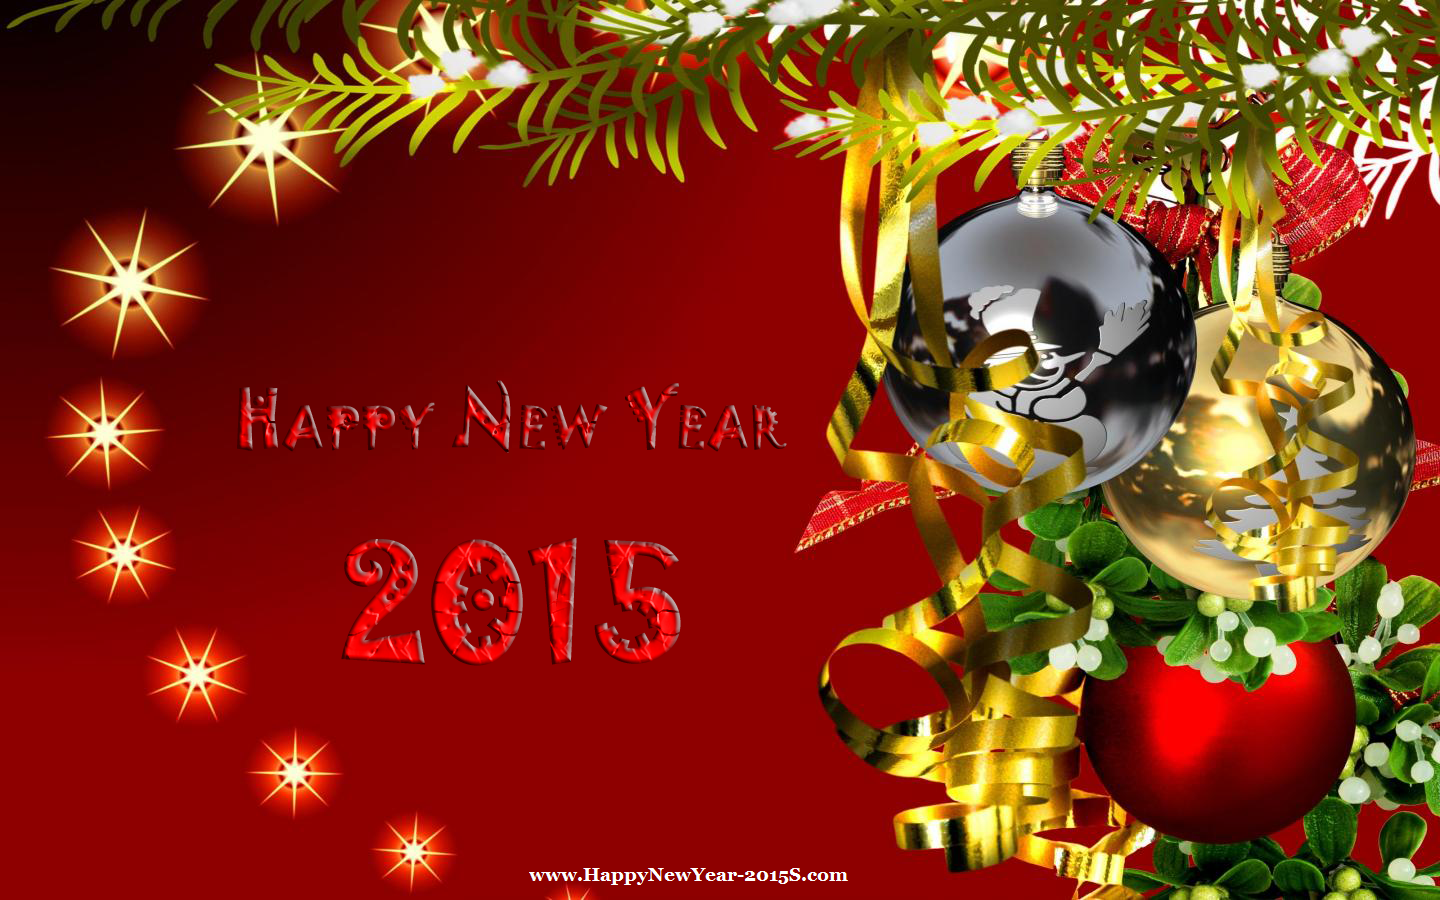 New Year Greetings Message Happy New Year 2015